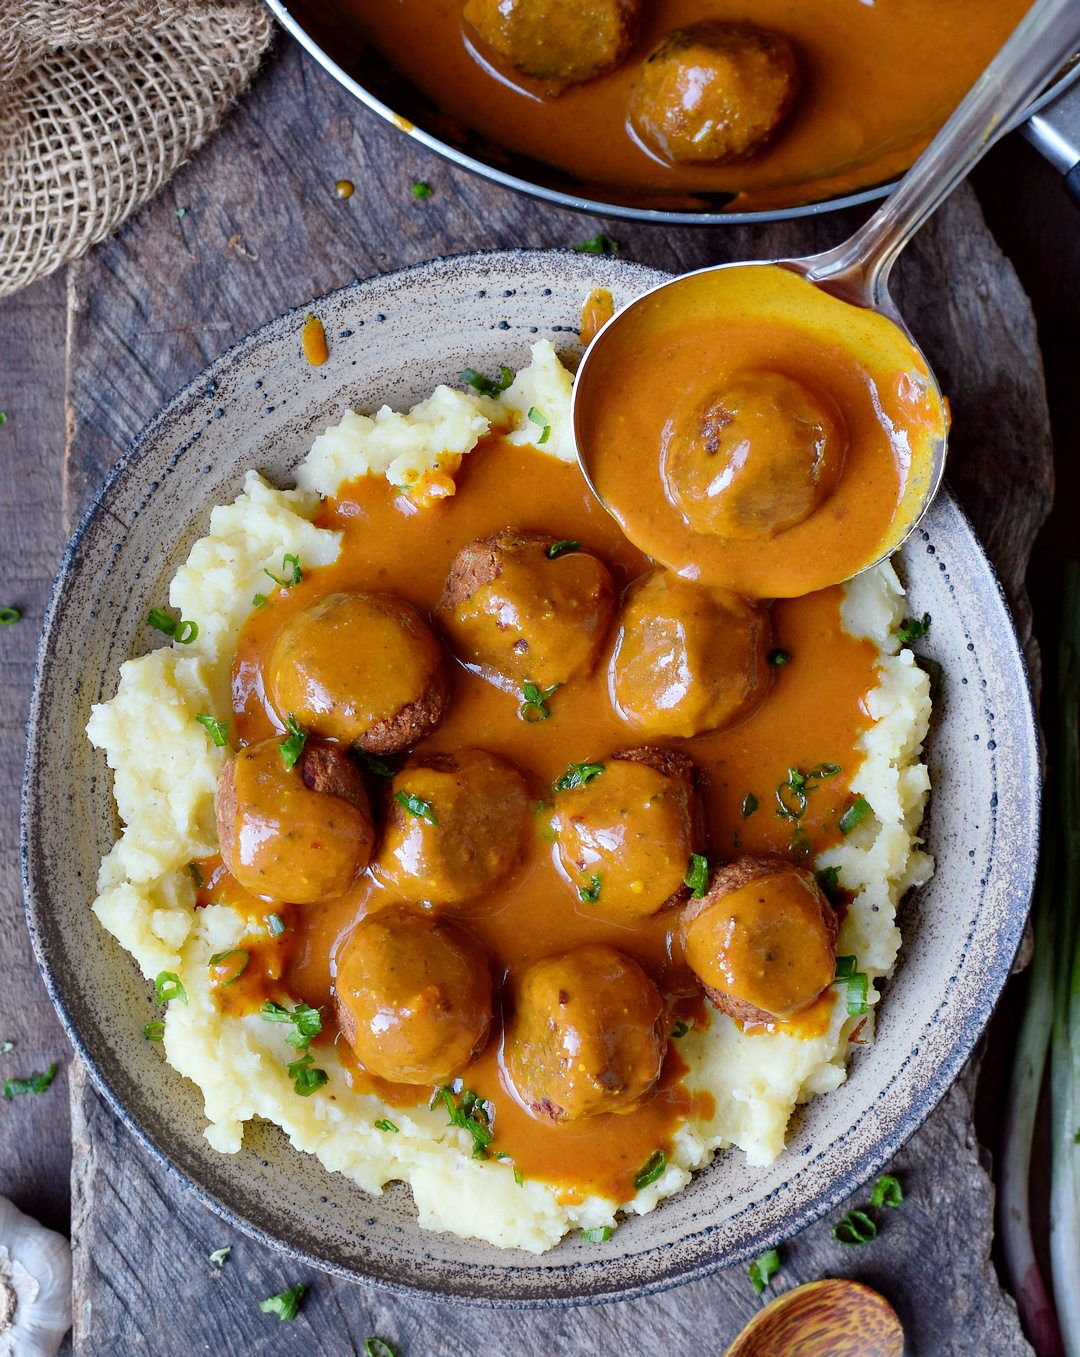 Vegan meatballs with a spicy gravy and mashed potatoes. This...